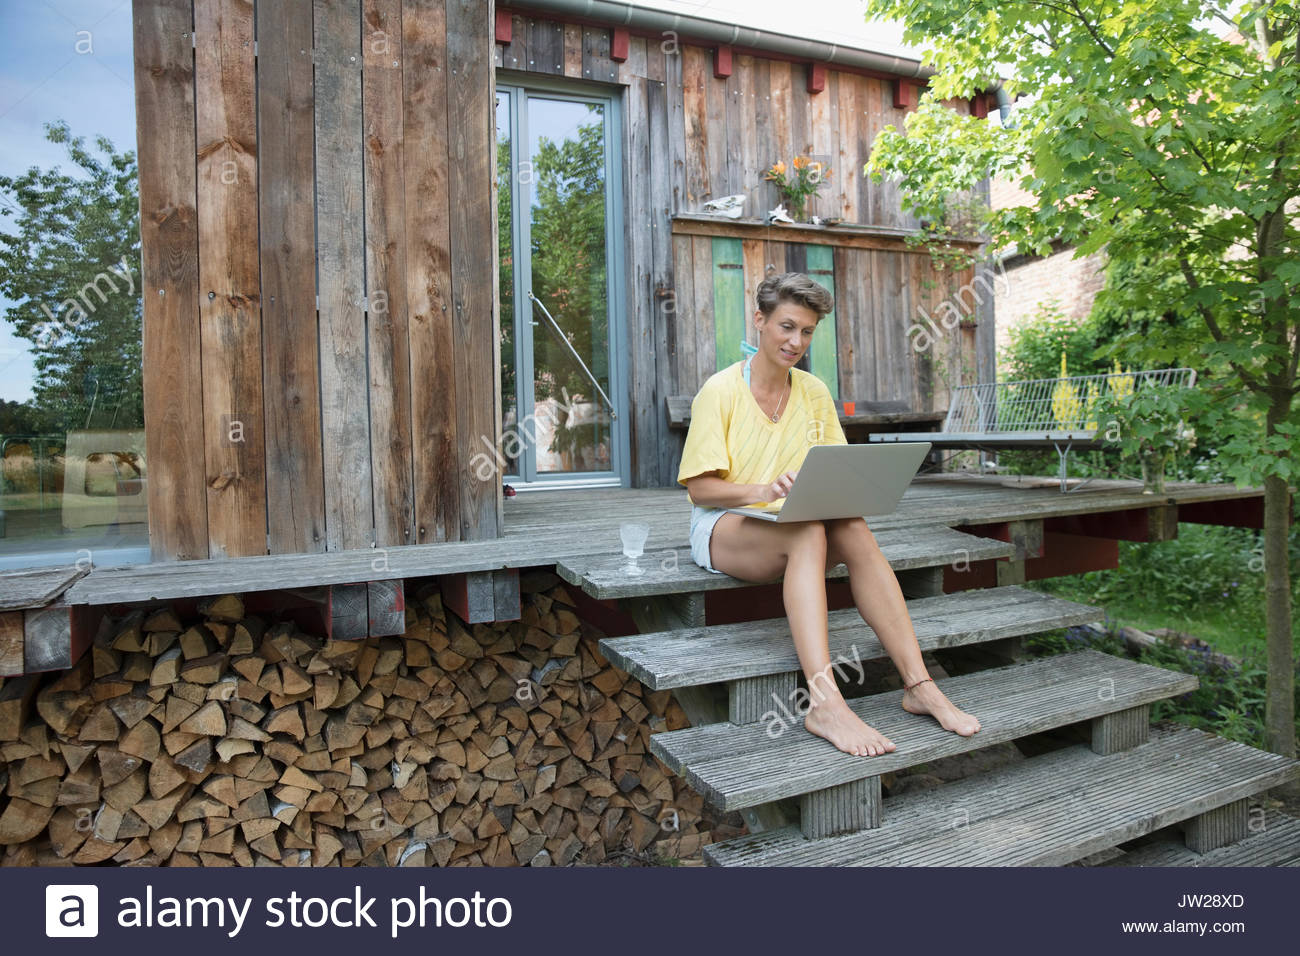 Barefoot woman using laptop on wood cabin steps - Stock Image